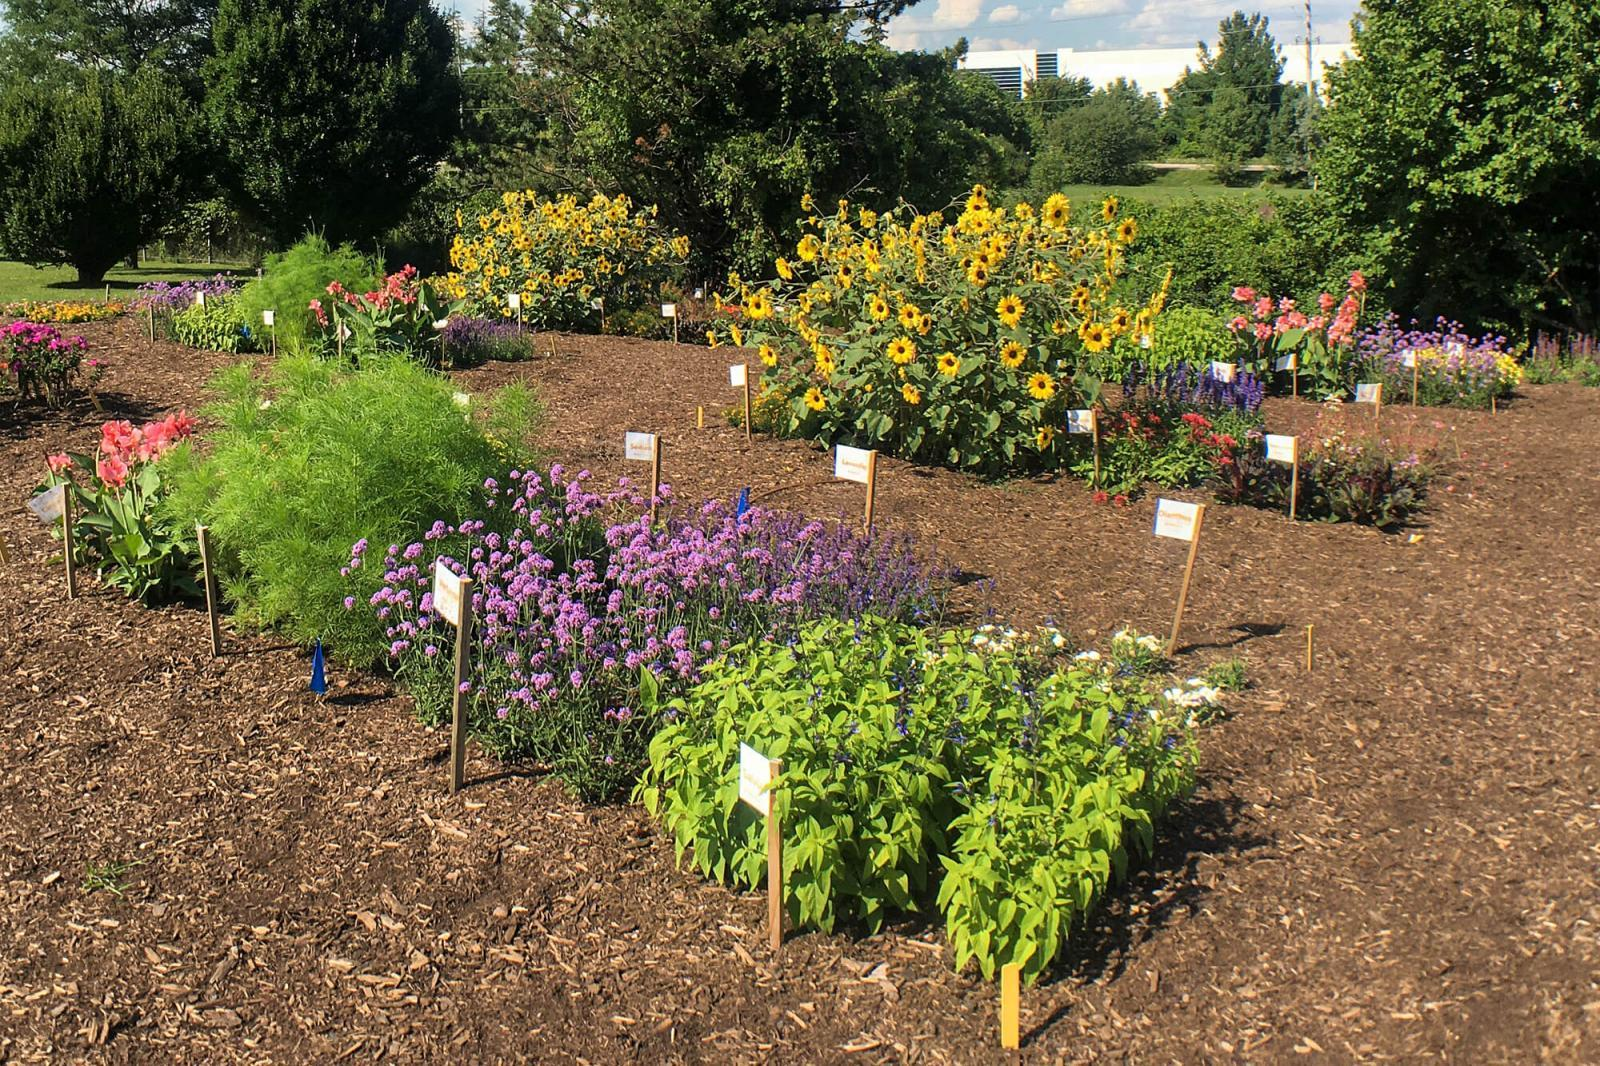 The 2020 trial set up at the Landscape Ontario site. Plots of exotic ornamentals only (foreground) were compared to plots of native plants (background; with sunflowers). There were four plots per plant category (native or exotic) in a randomized design.